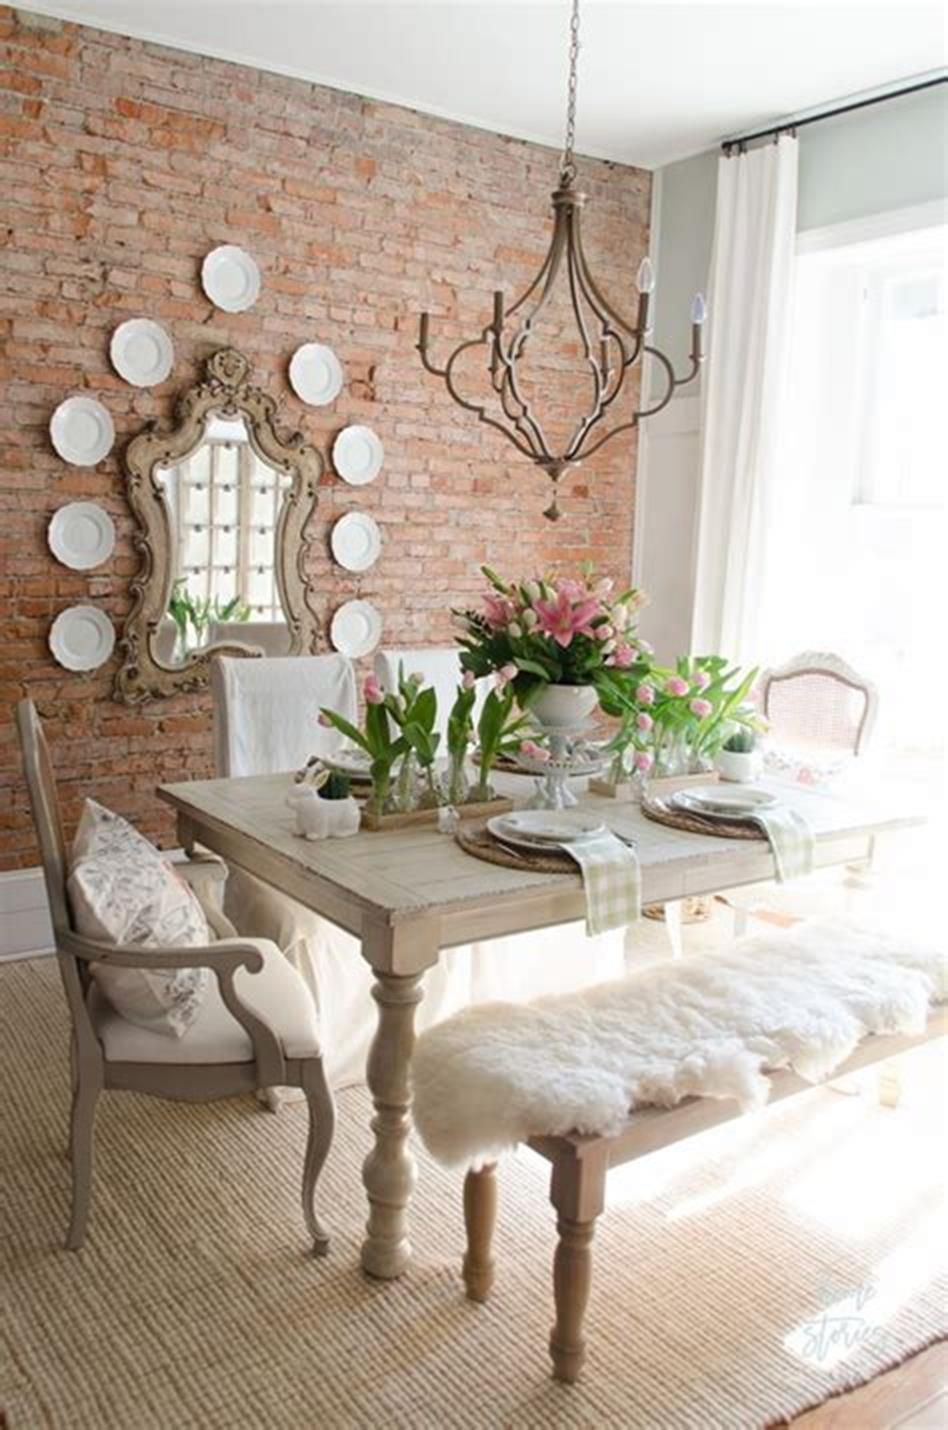 35 stunning spring kitchen and dining room decorating ideas 2019 dining room table decor on boho chic dining room kitchen dining tables id=99302